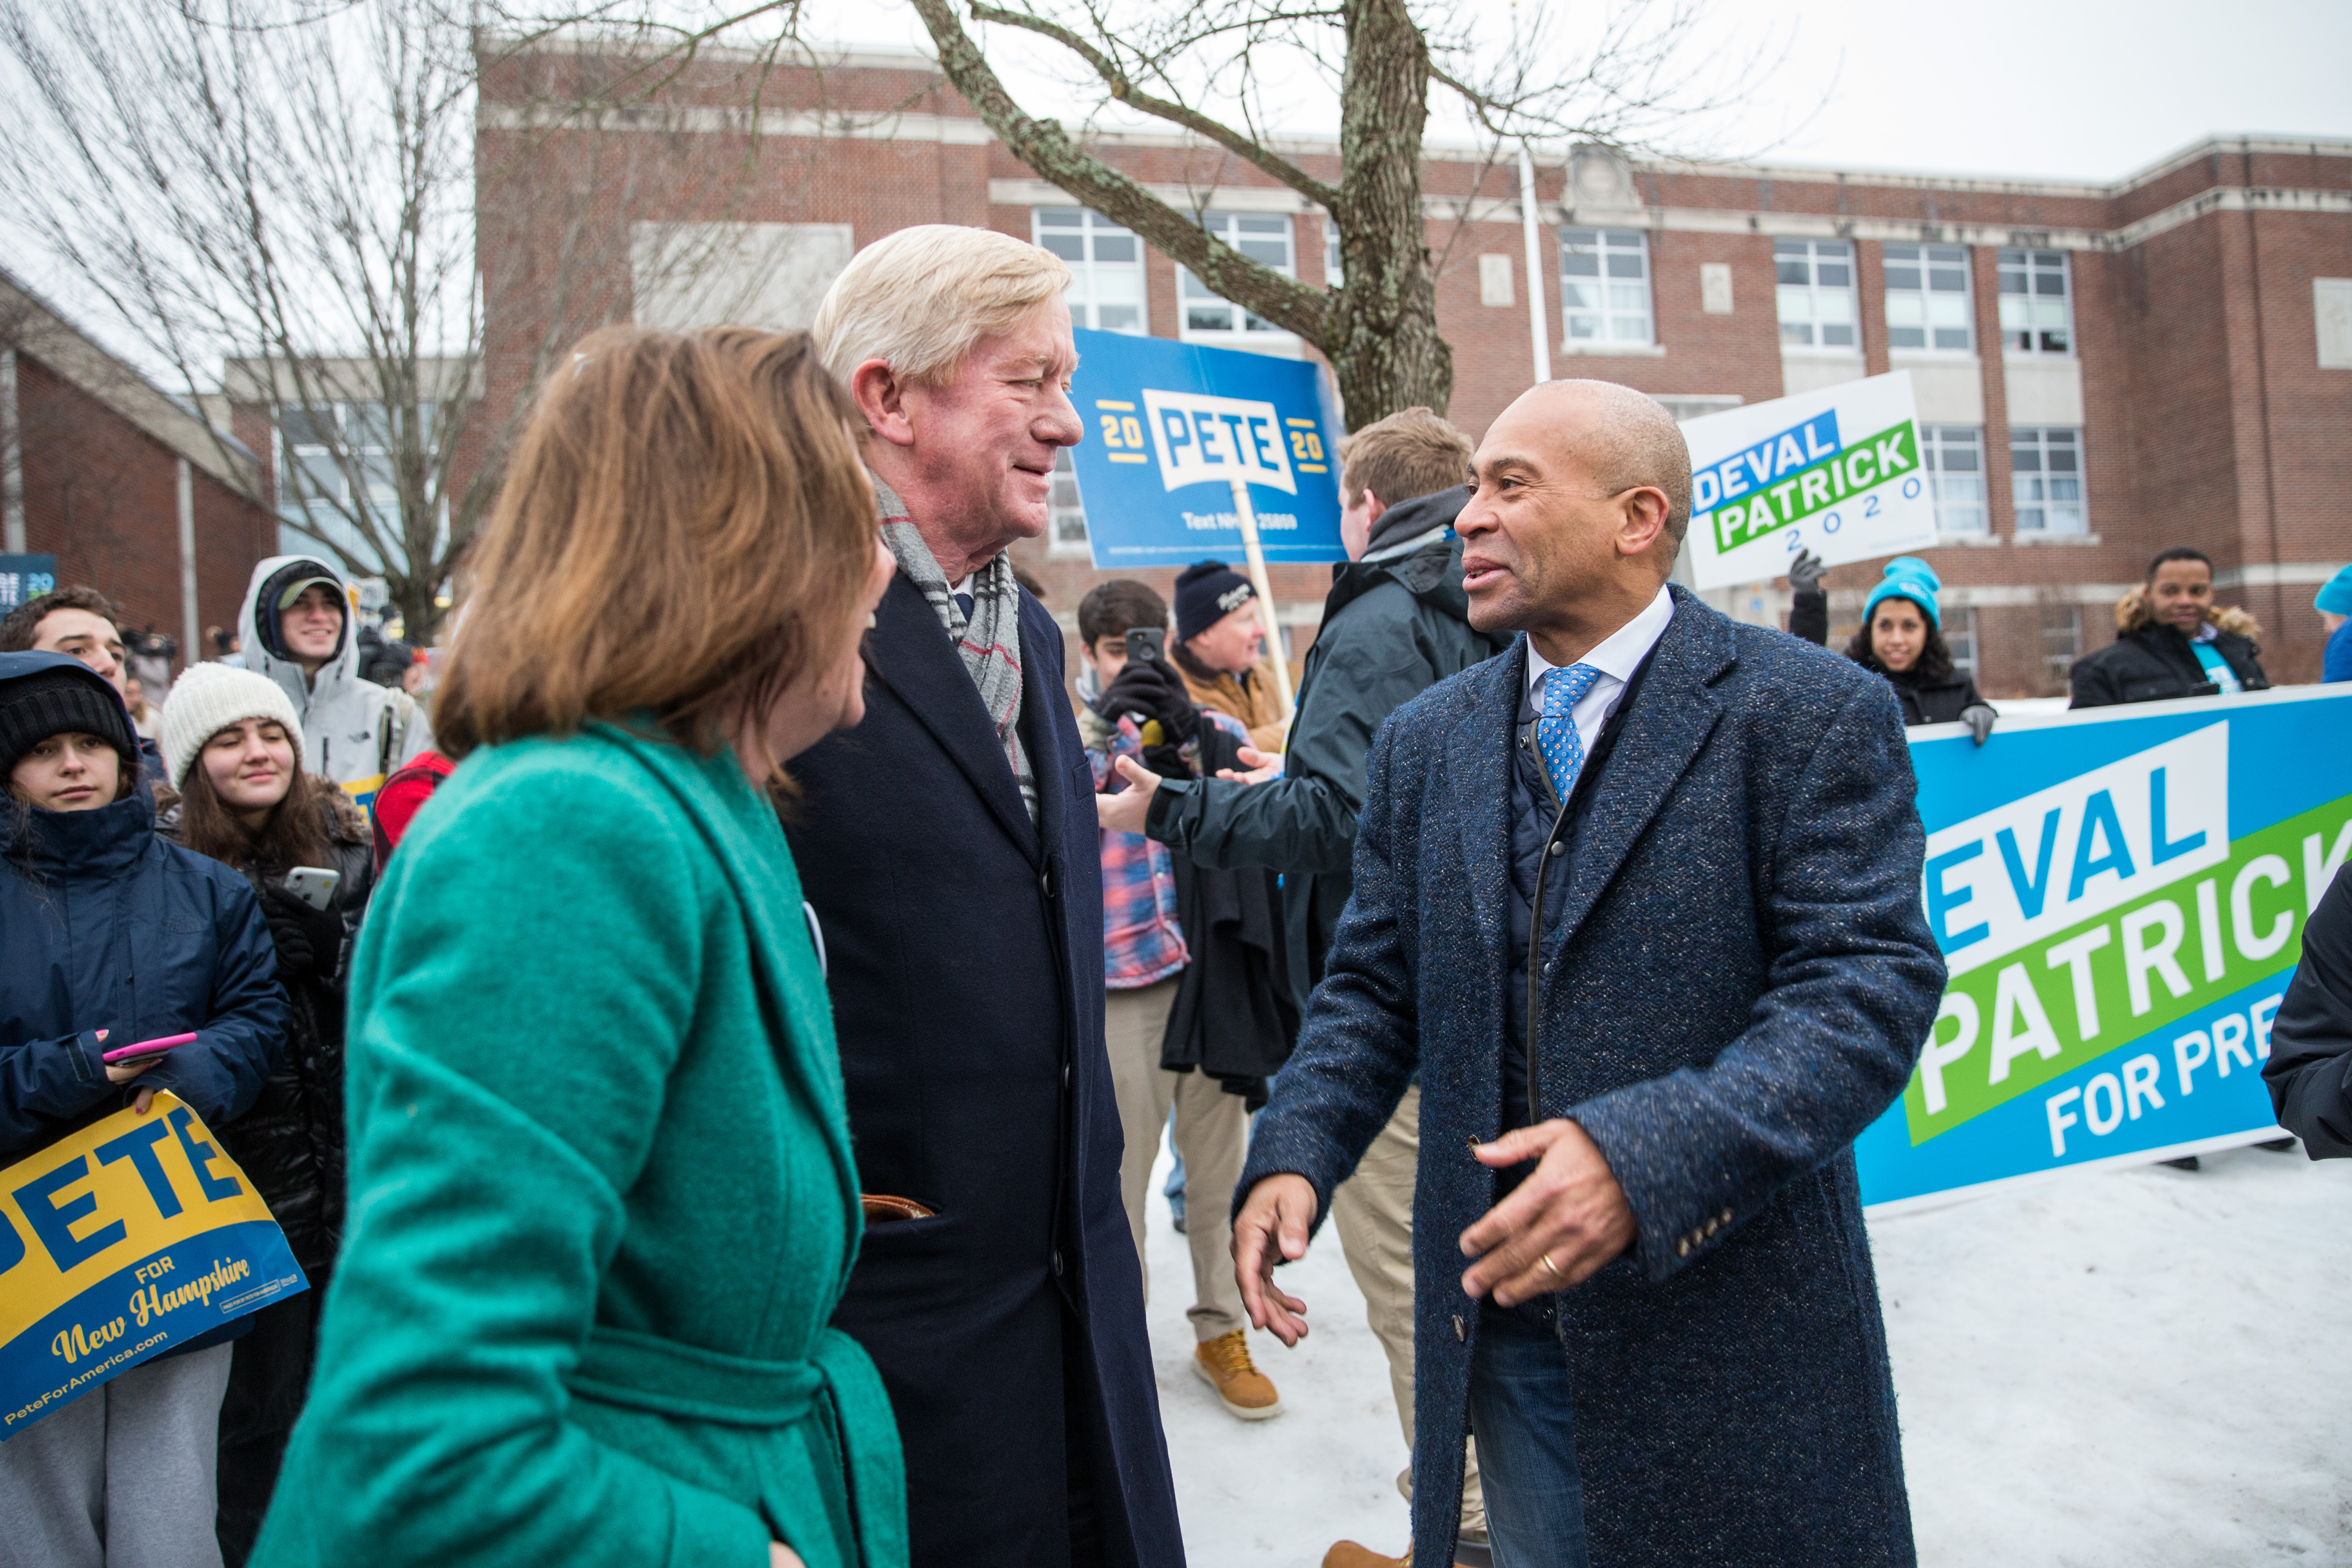 MANCHESTER, NH - FEBRUARY 11: Republican presidential candidate former Massachusetts Governor Bill Weld (C), talks with Democratic presidential candidate former Massachusetts Governor Deval Patrick outside of the Webster Elementary School during the presidential primary on February 11, 2020 in Manchester, New Hampshire. (Photo by Scott Eisen/Getty Images)